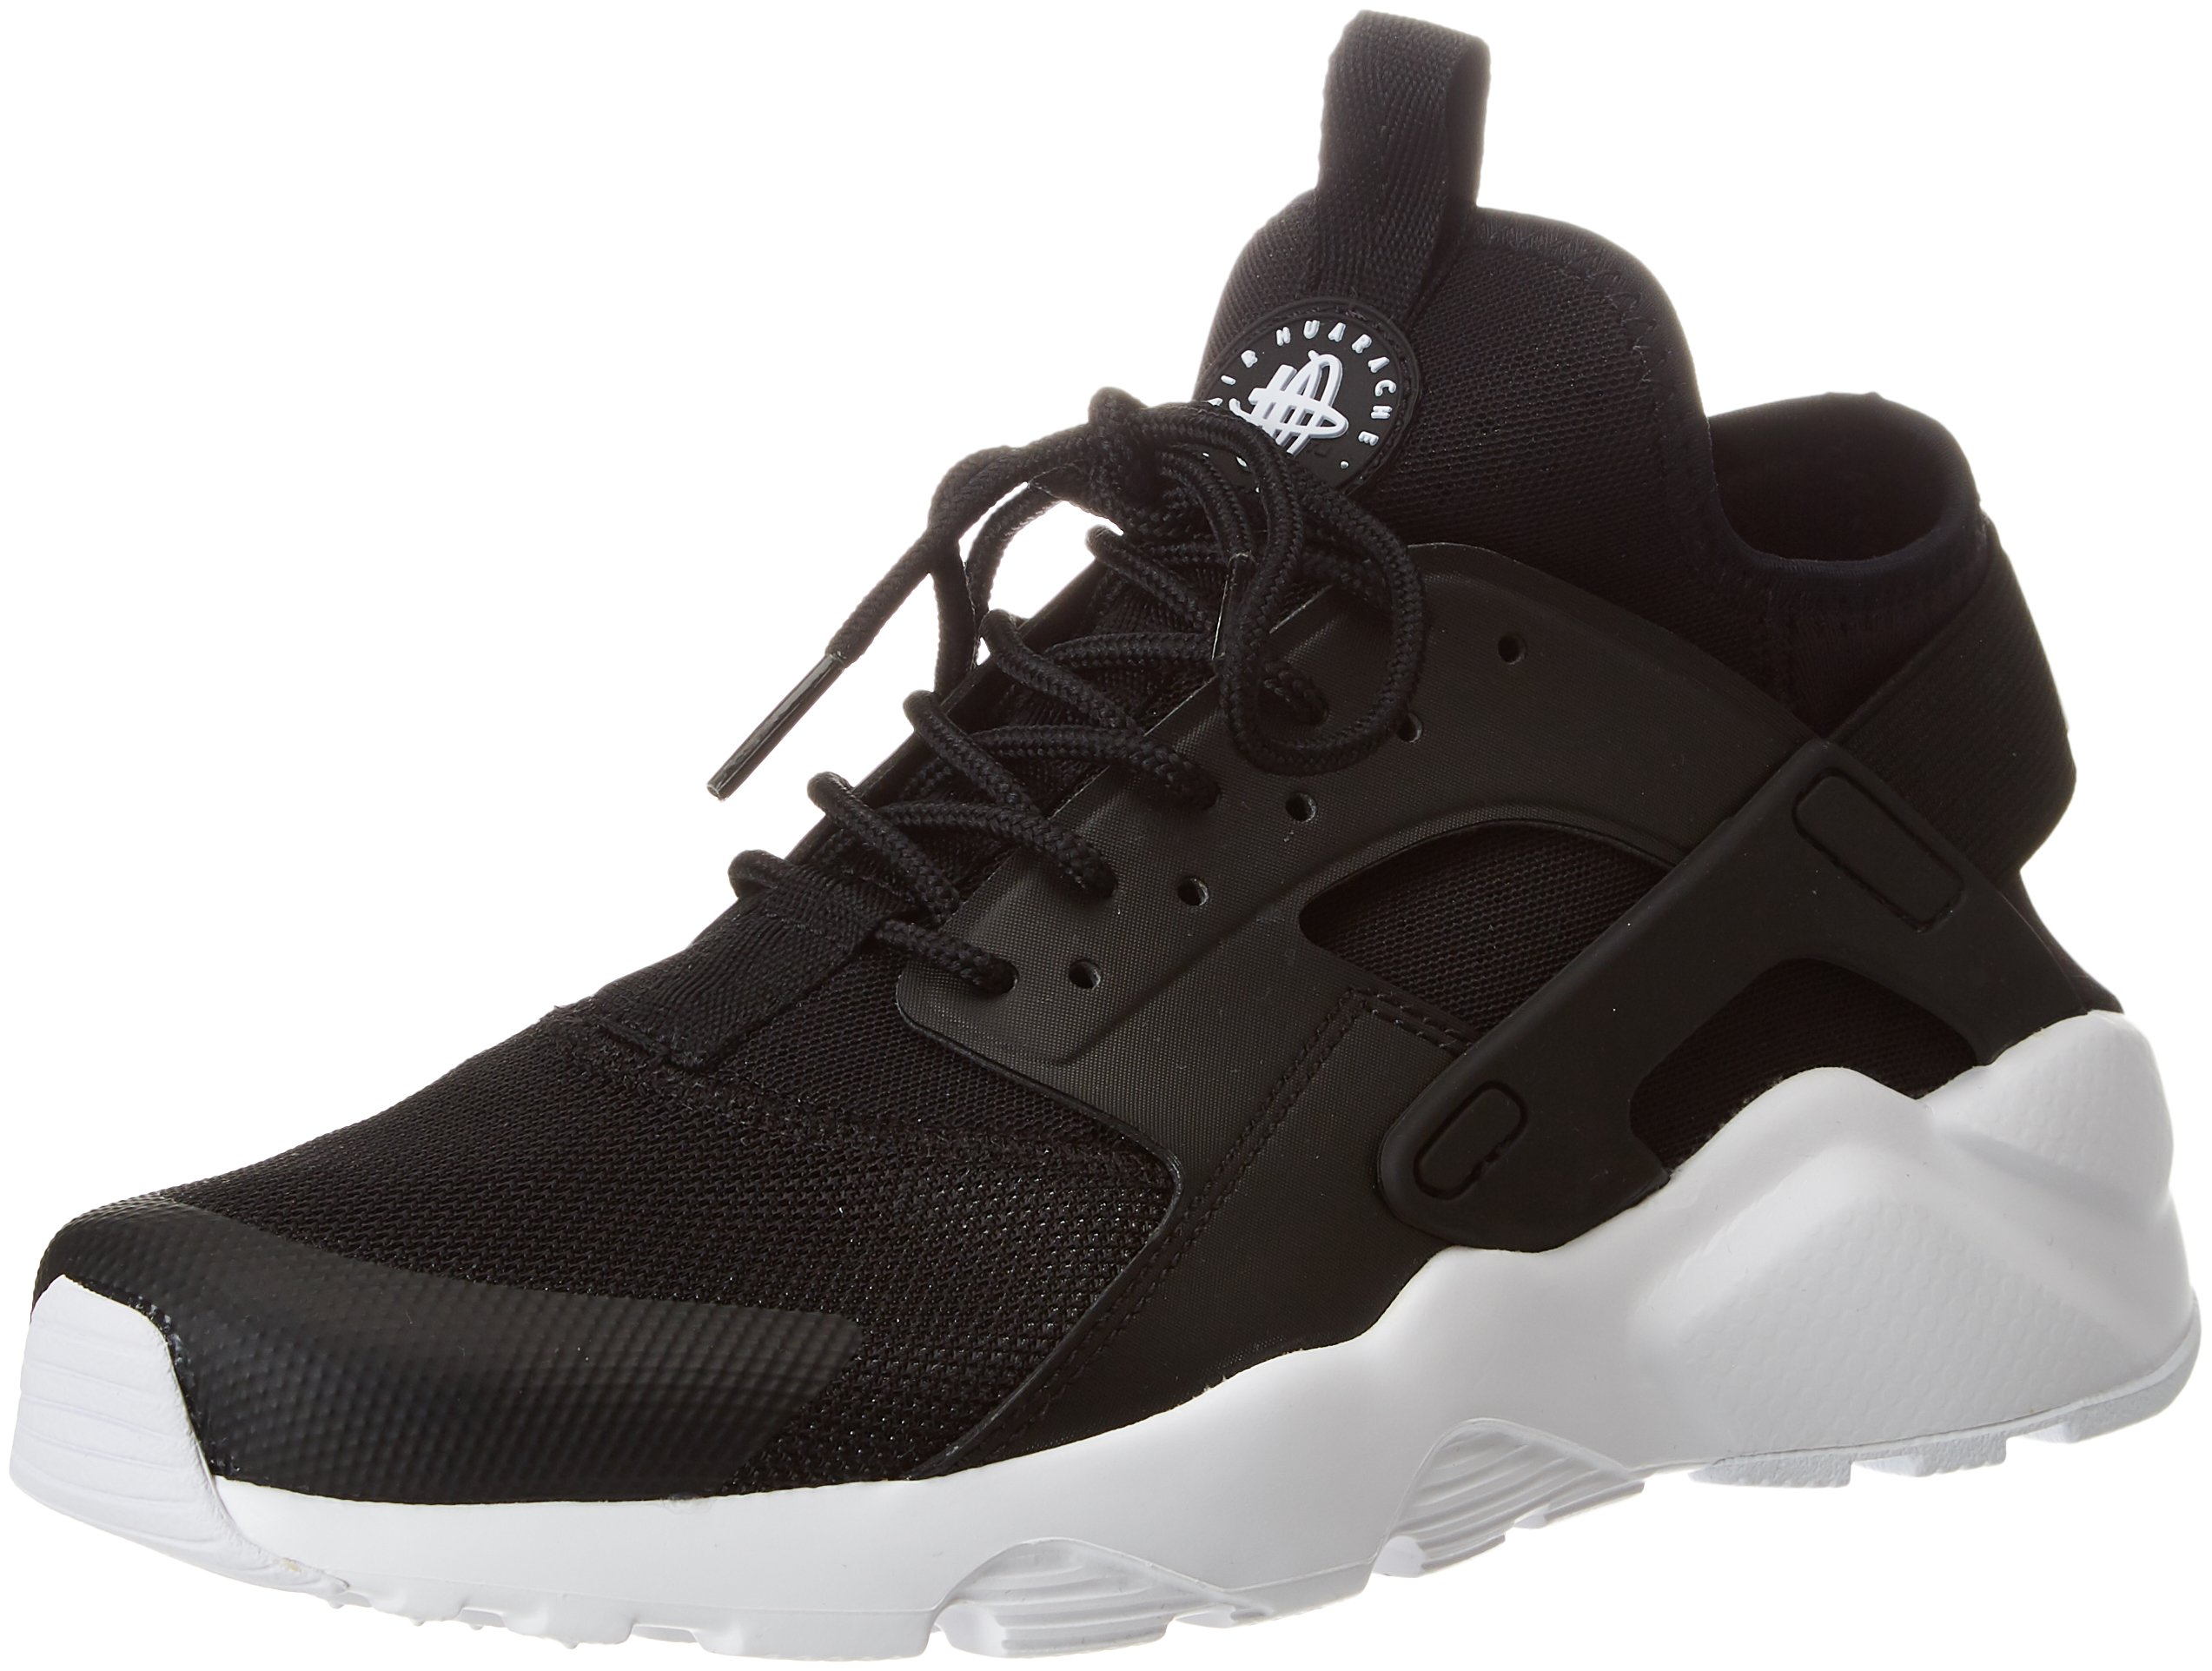 lowest price a7c1d 8f3b7 Galleon - Nike Air Huarache Run Ultra Men s Running Shoes Black White 819685-016  (11.5 D(M) US)